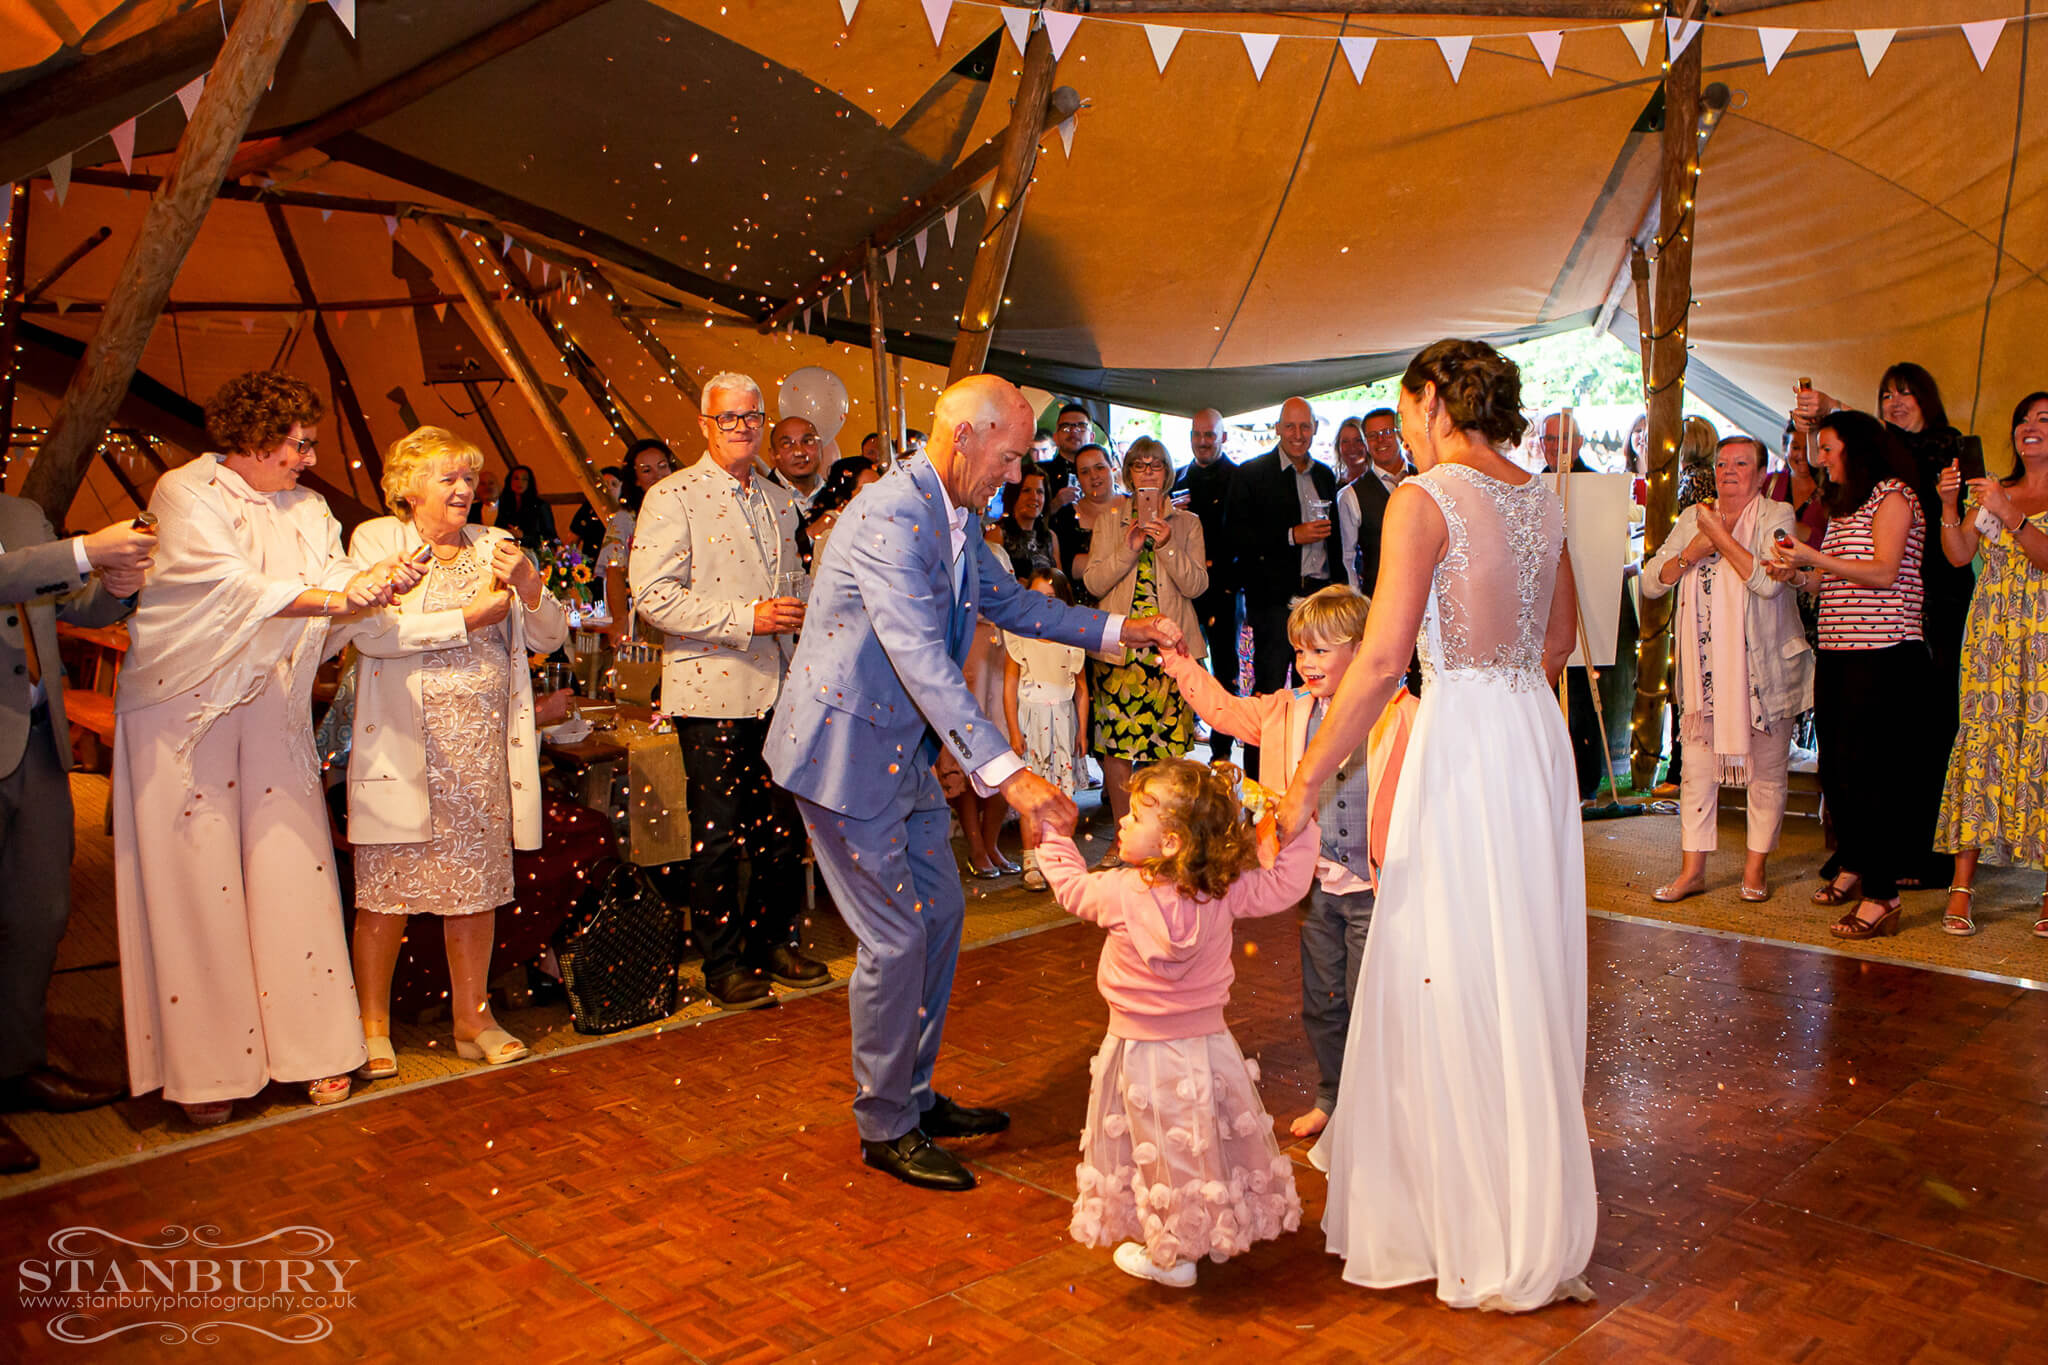 festival-first-dance-wedding-photography-lancashire-stanbury-042